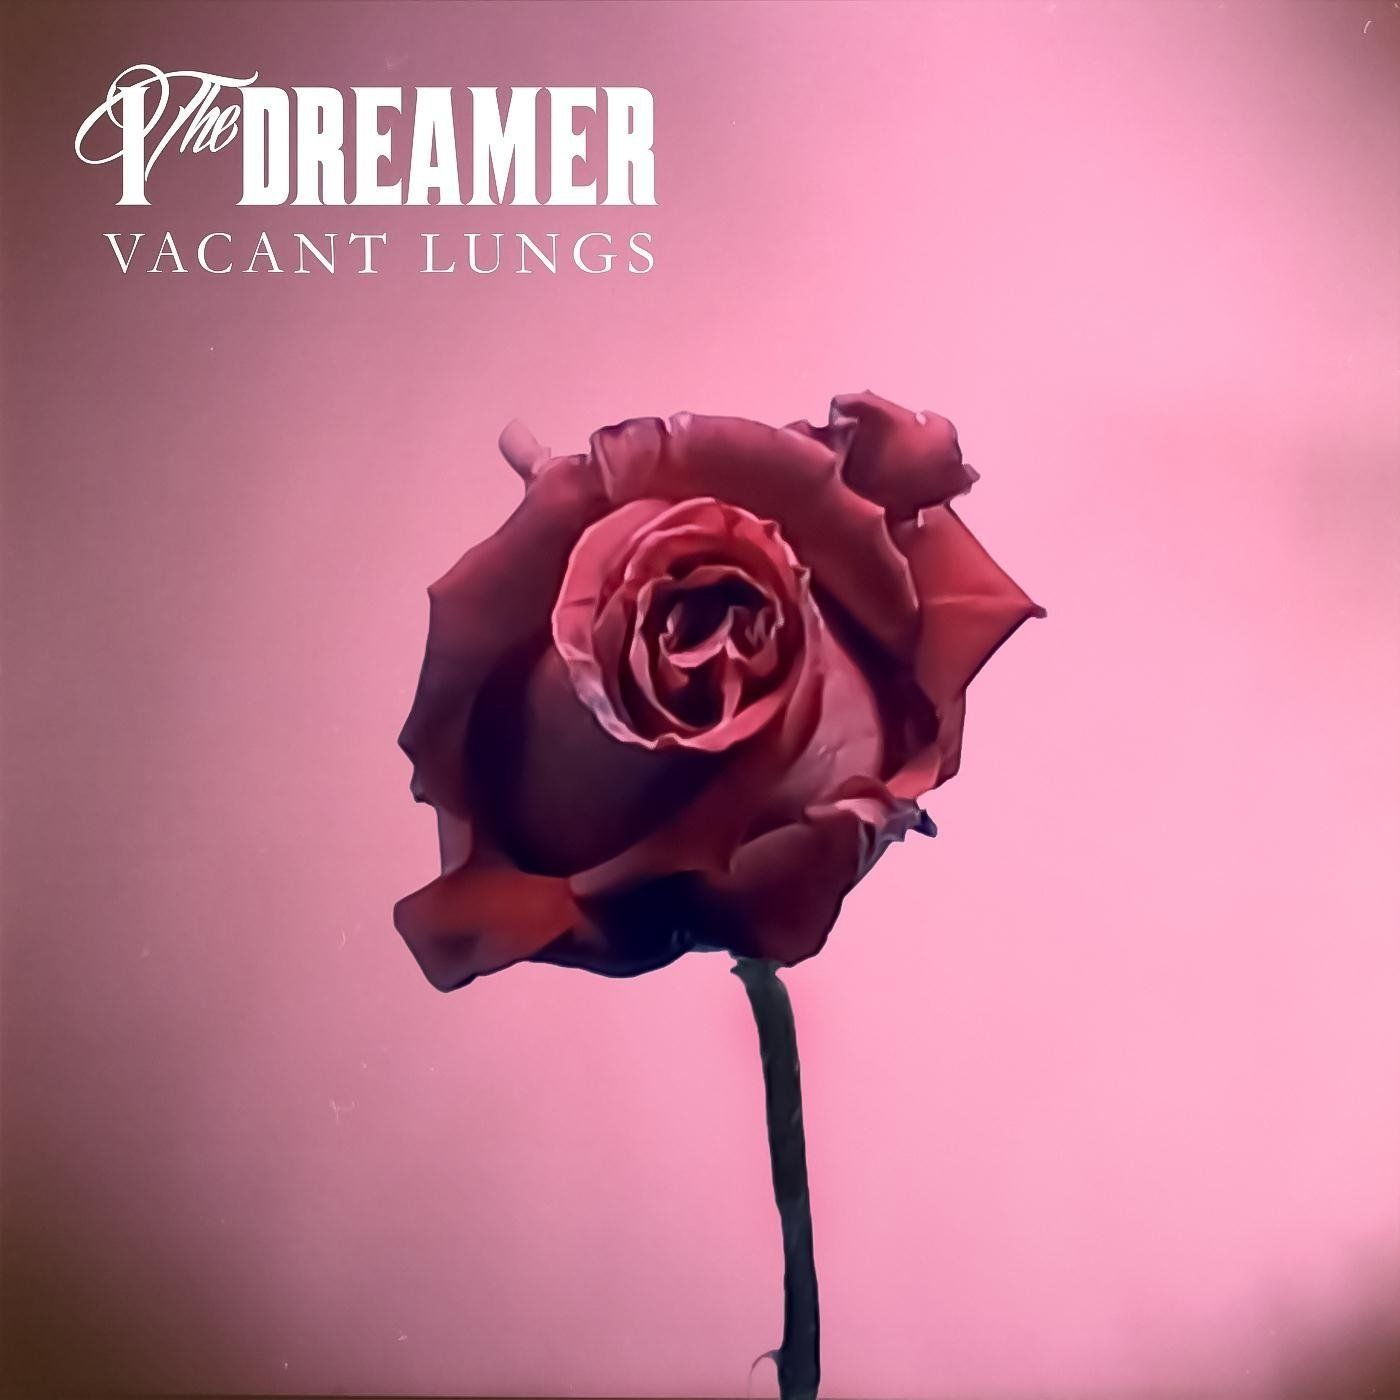 I, The Dreamer - Vacant Lungs [single] (2021)